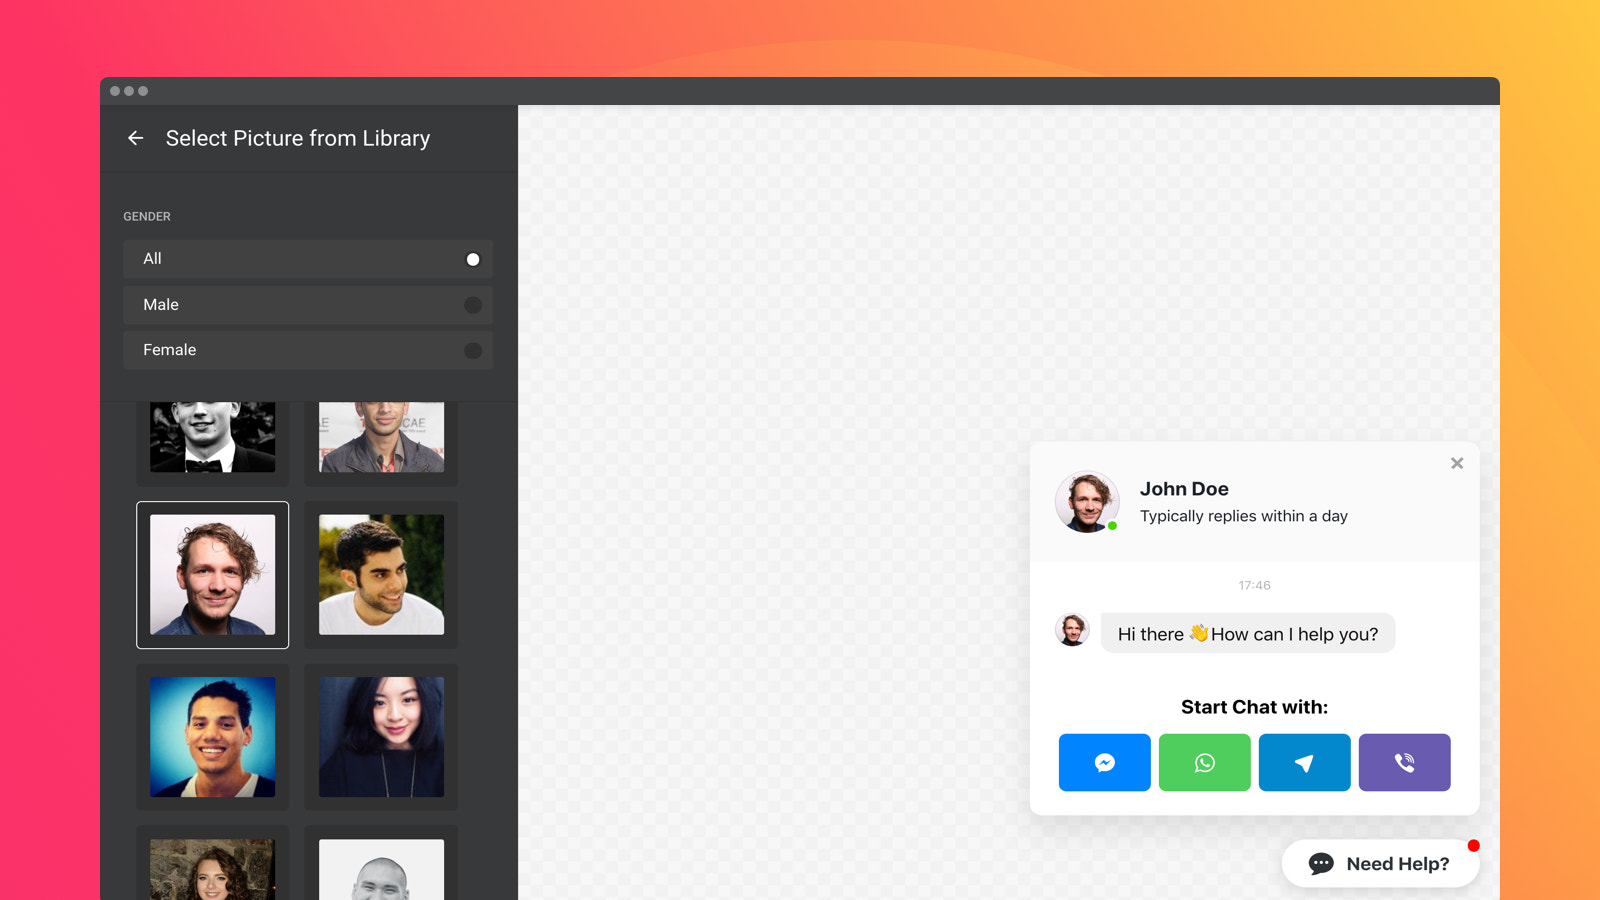 Select the profile photo for your chat or upload your own